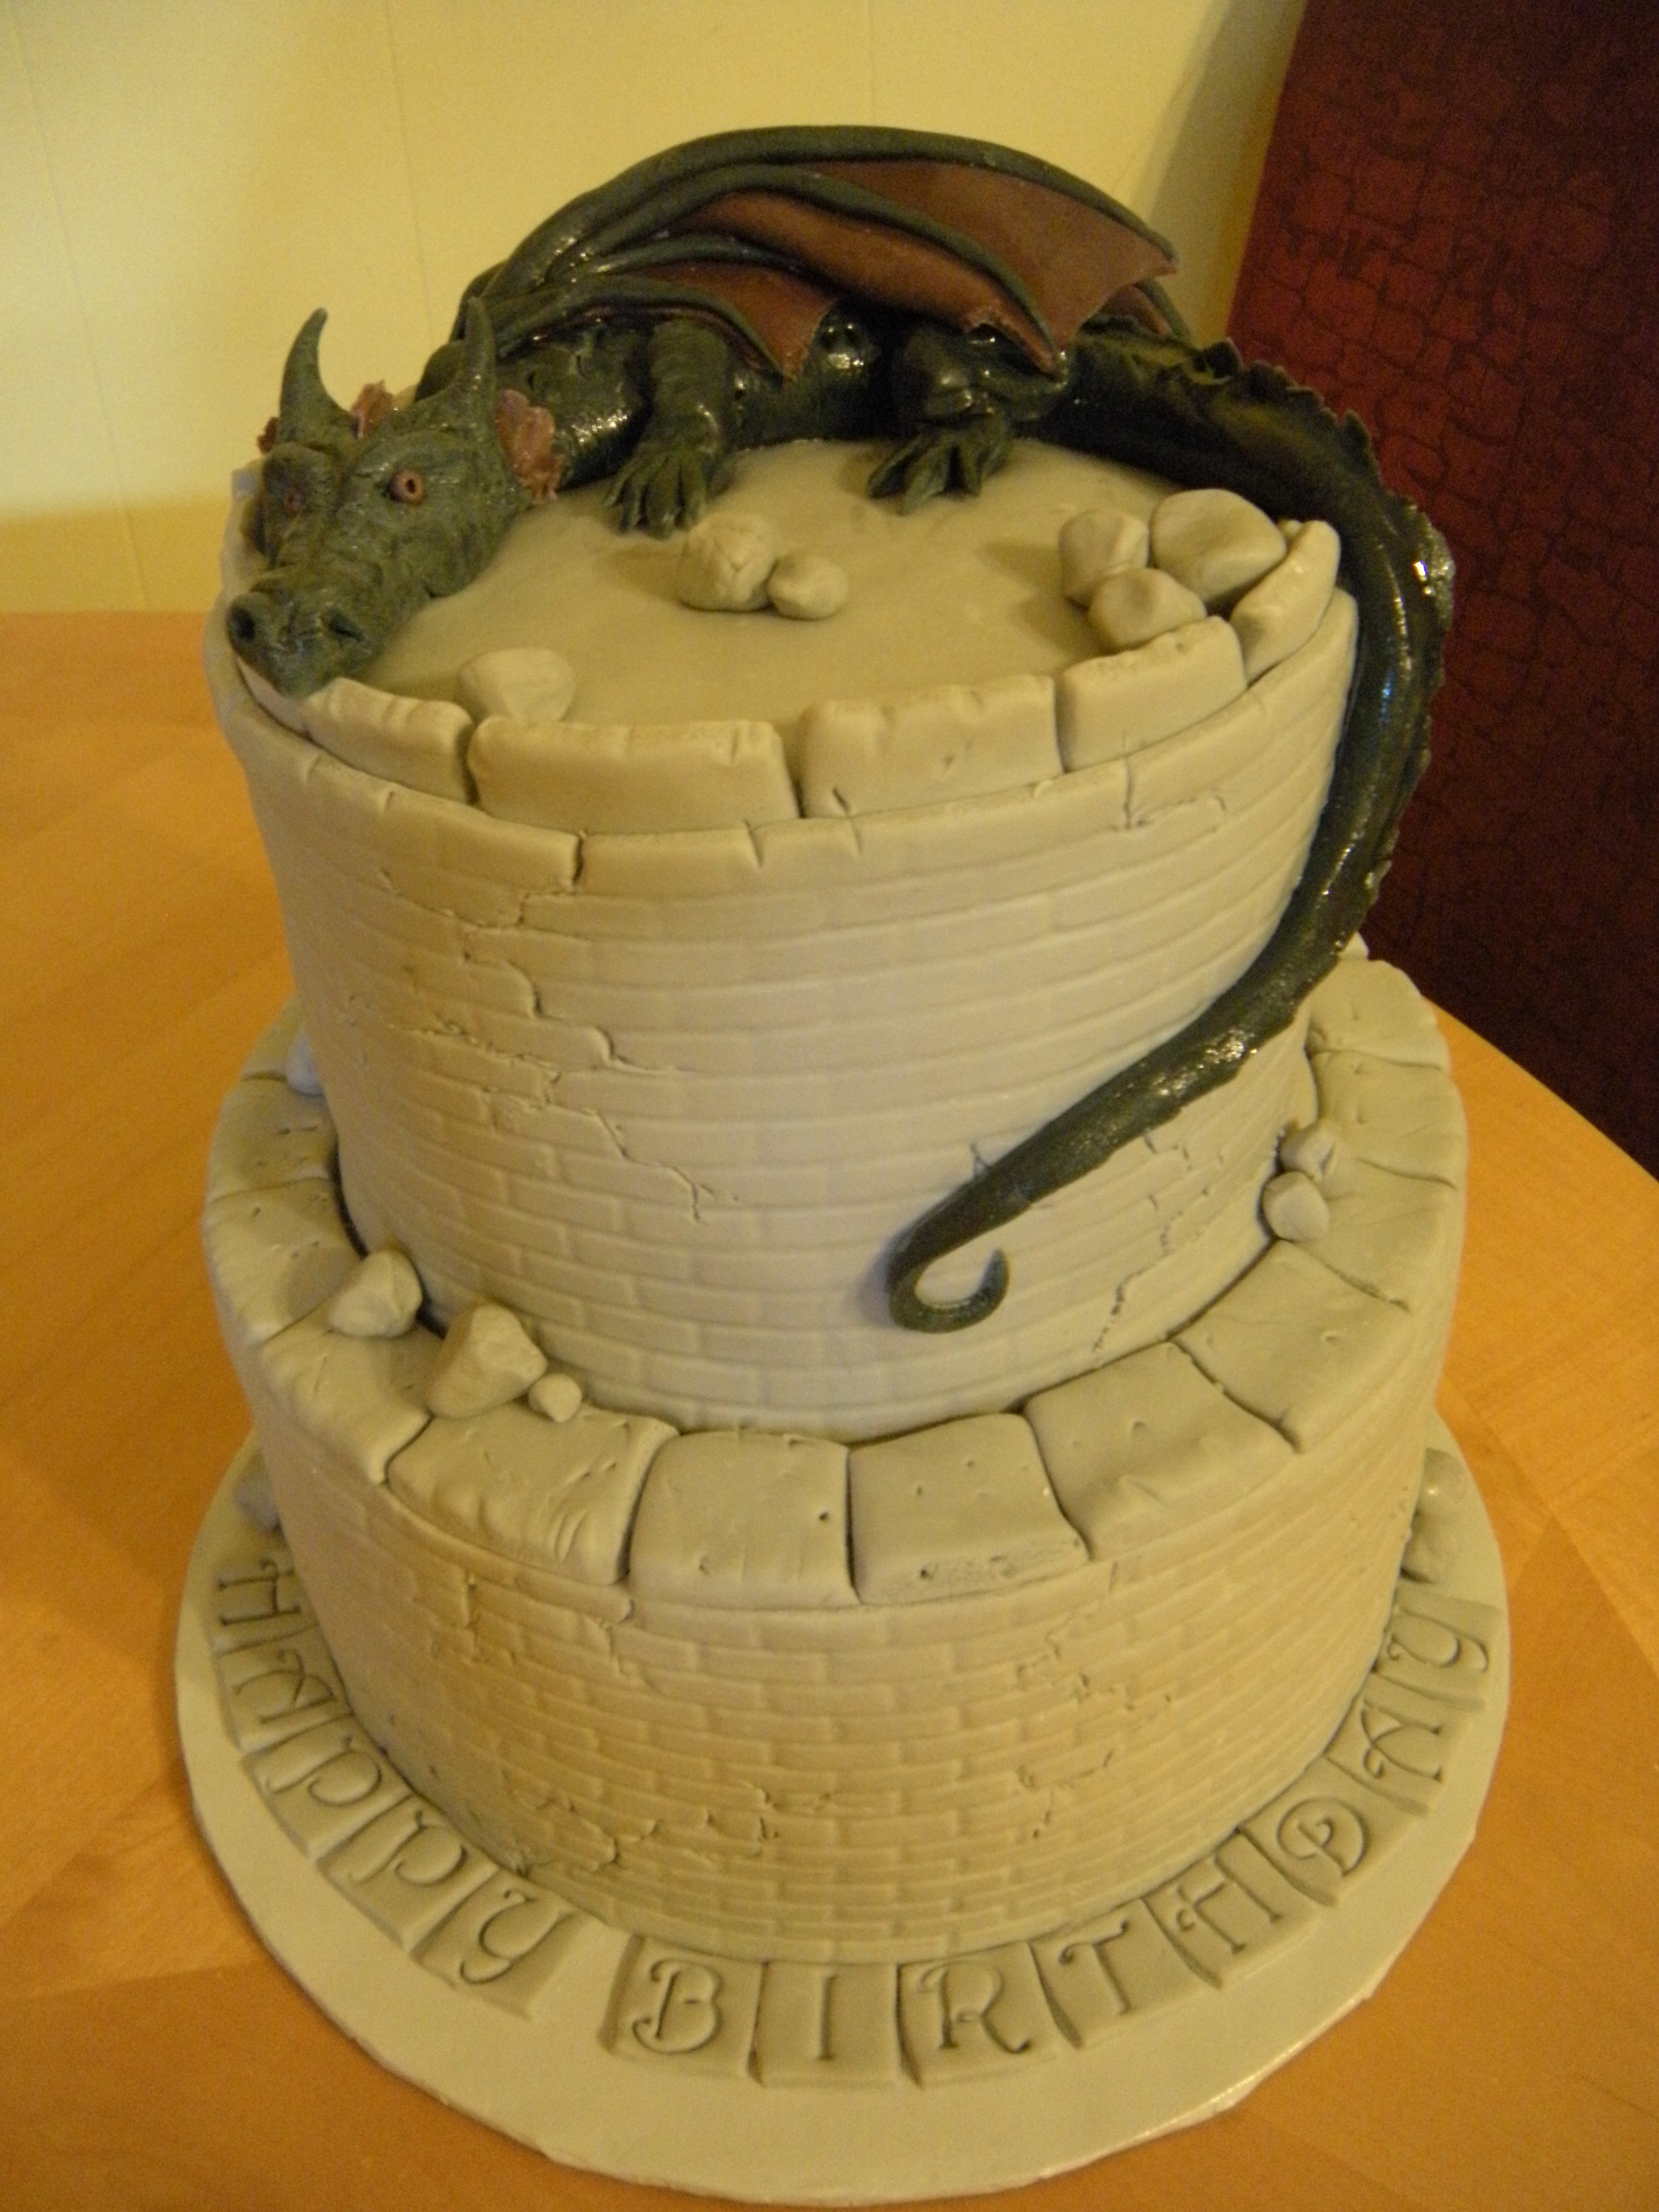 Dragon Birthday Cake Dscn8849 Main Made Custom Cakes